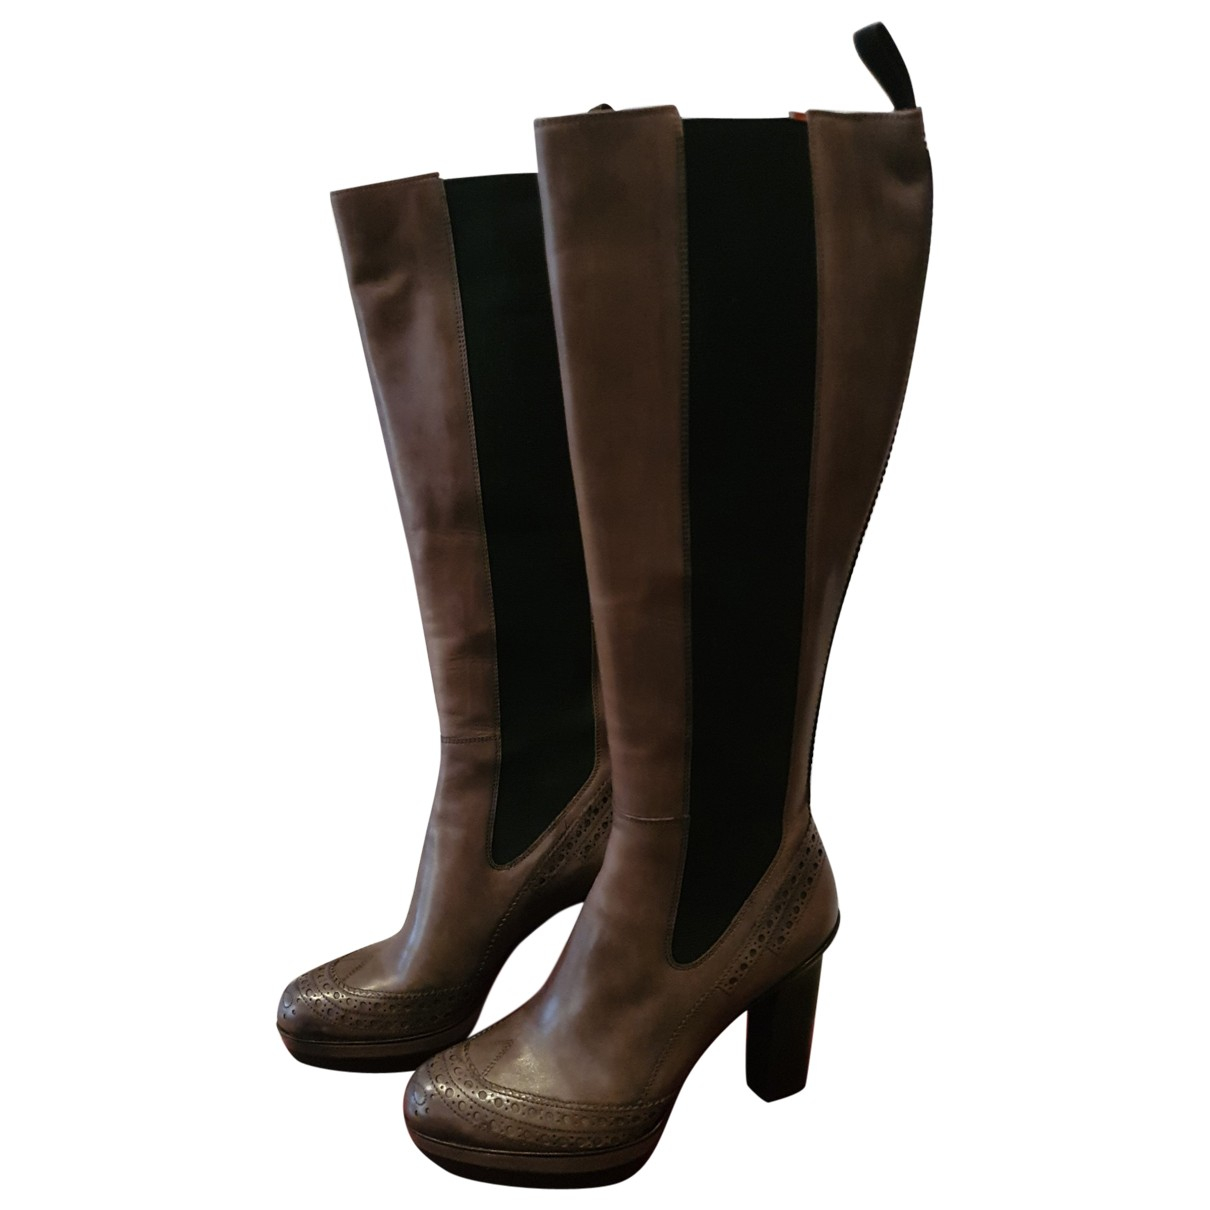 Santoni N Brown Leather Boots for Women 36.5 IT